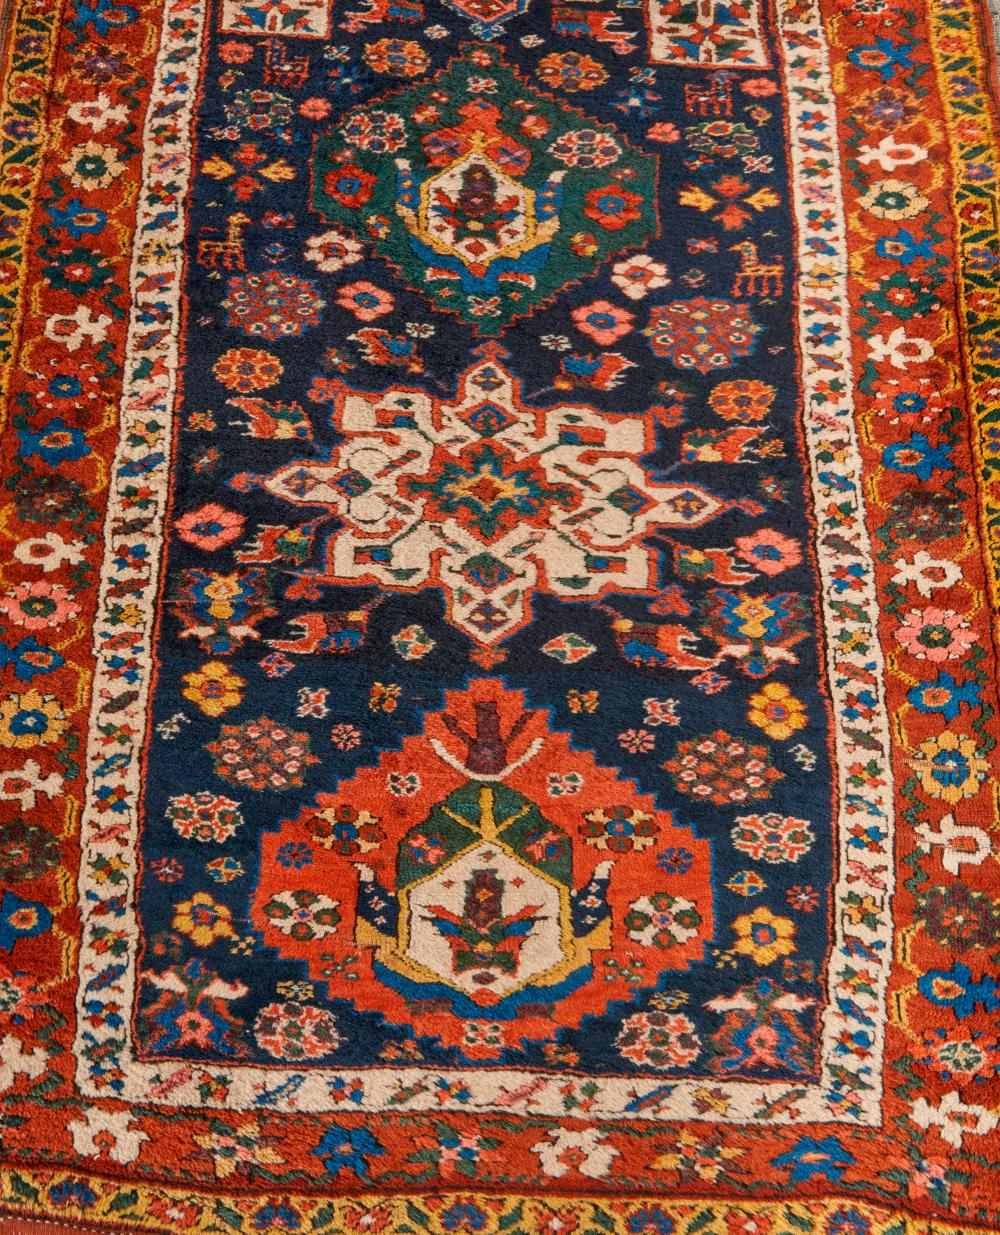 North West Persian Runner, ca. 1900; 12 ft. 8 in. x 3 ft. 7 in.